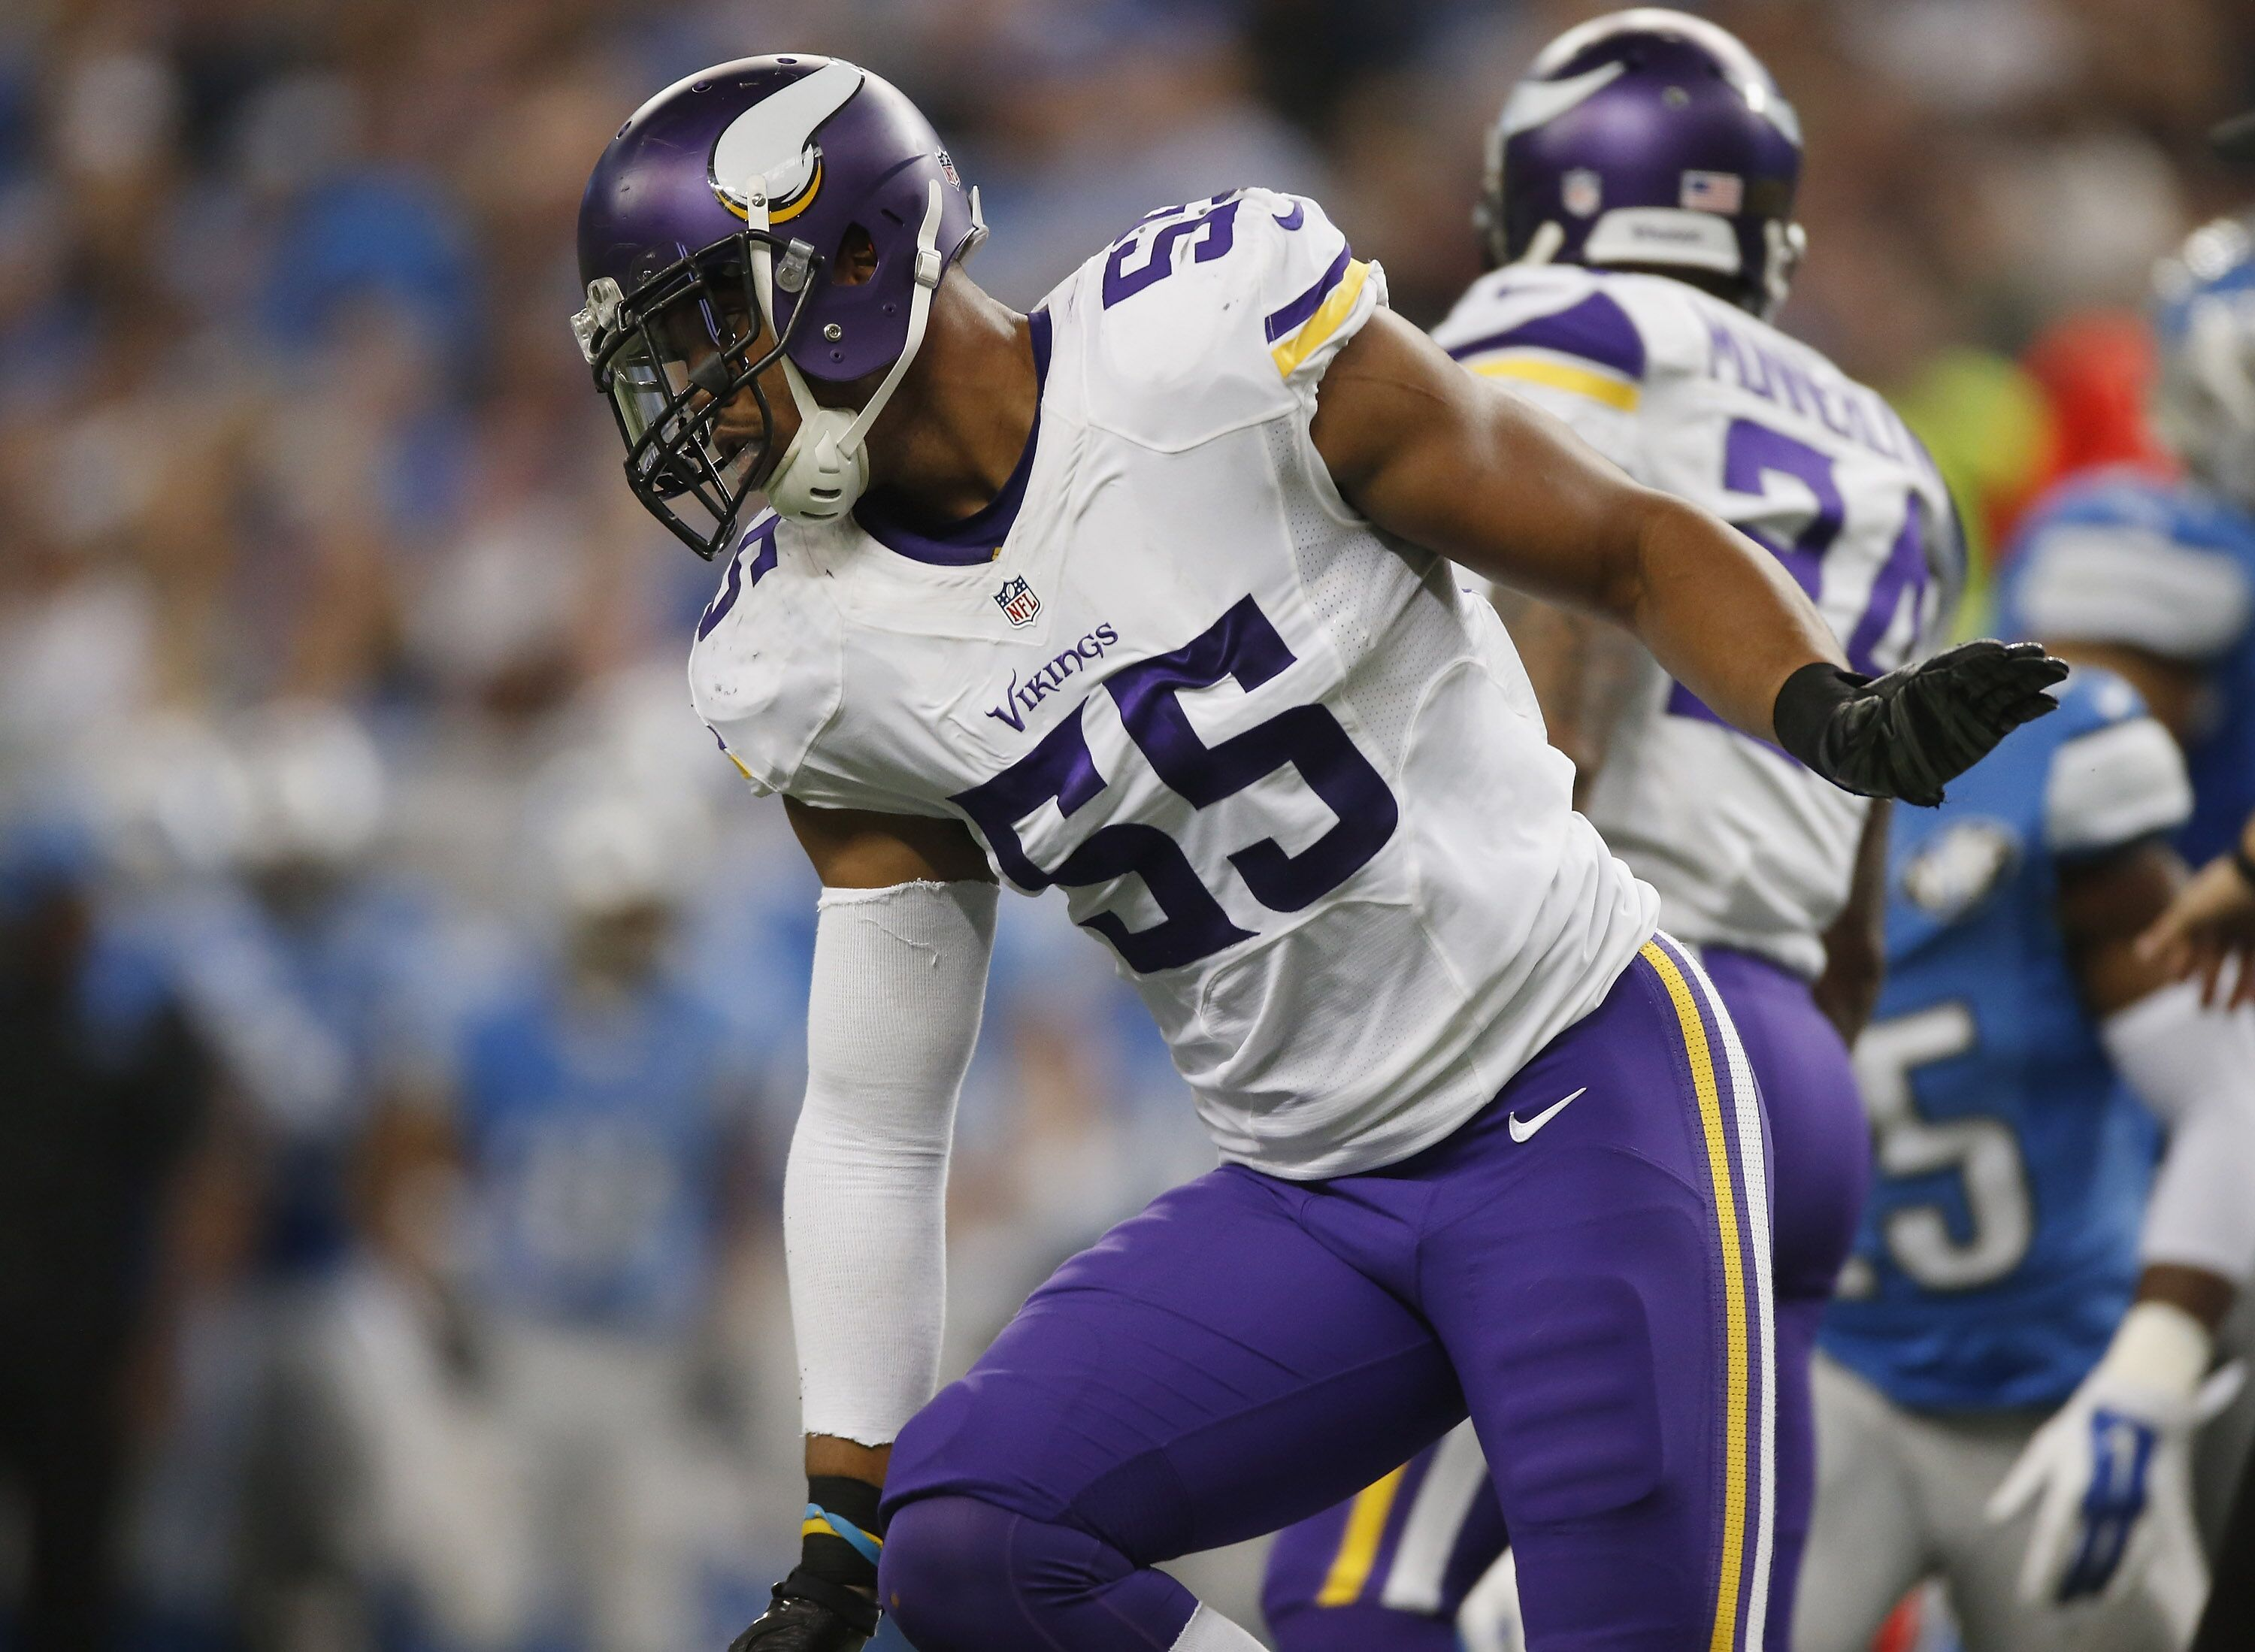 The game that ended Anthony Barr's career with the Vikings